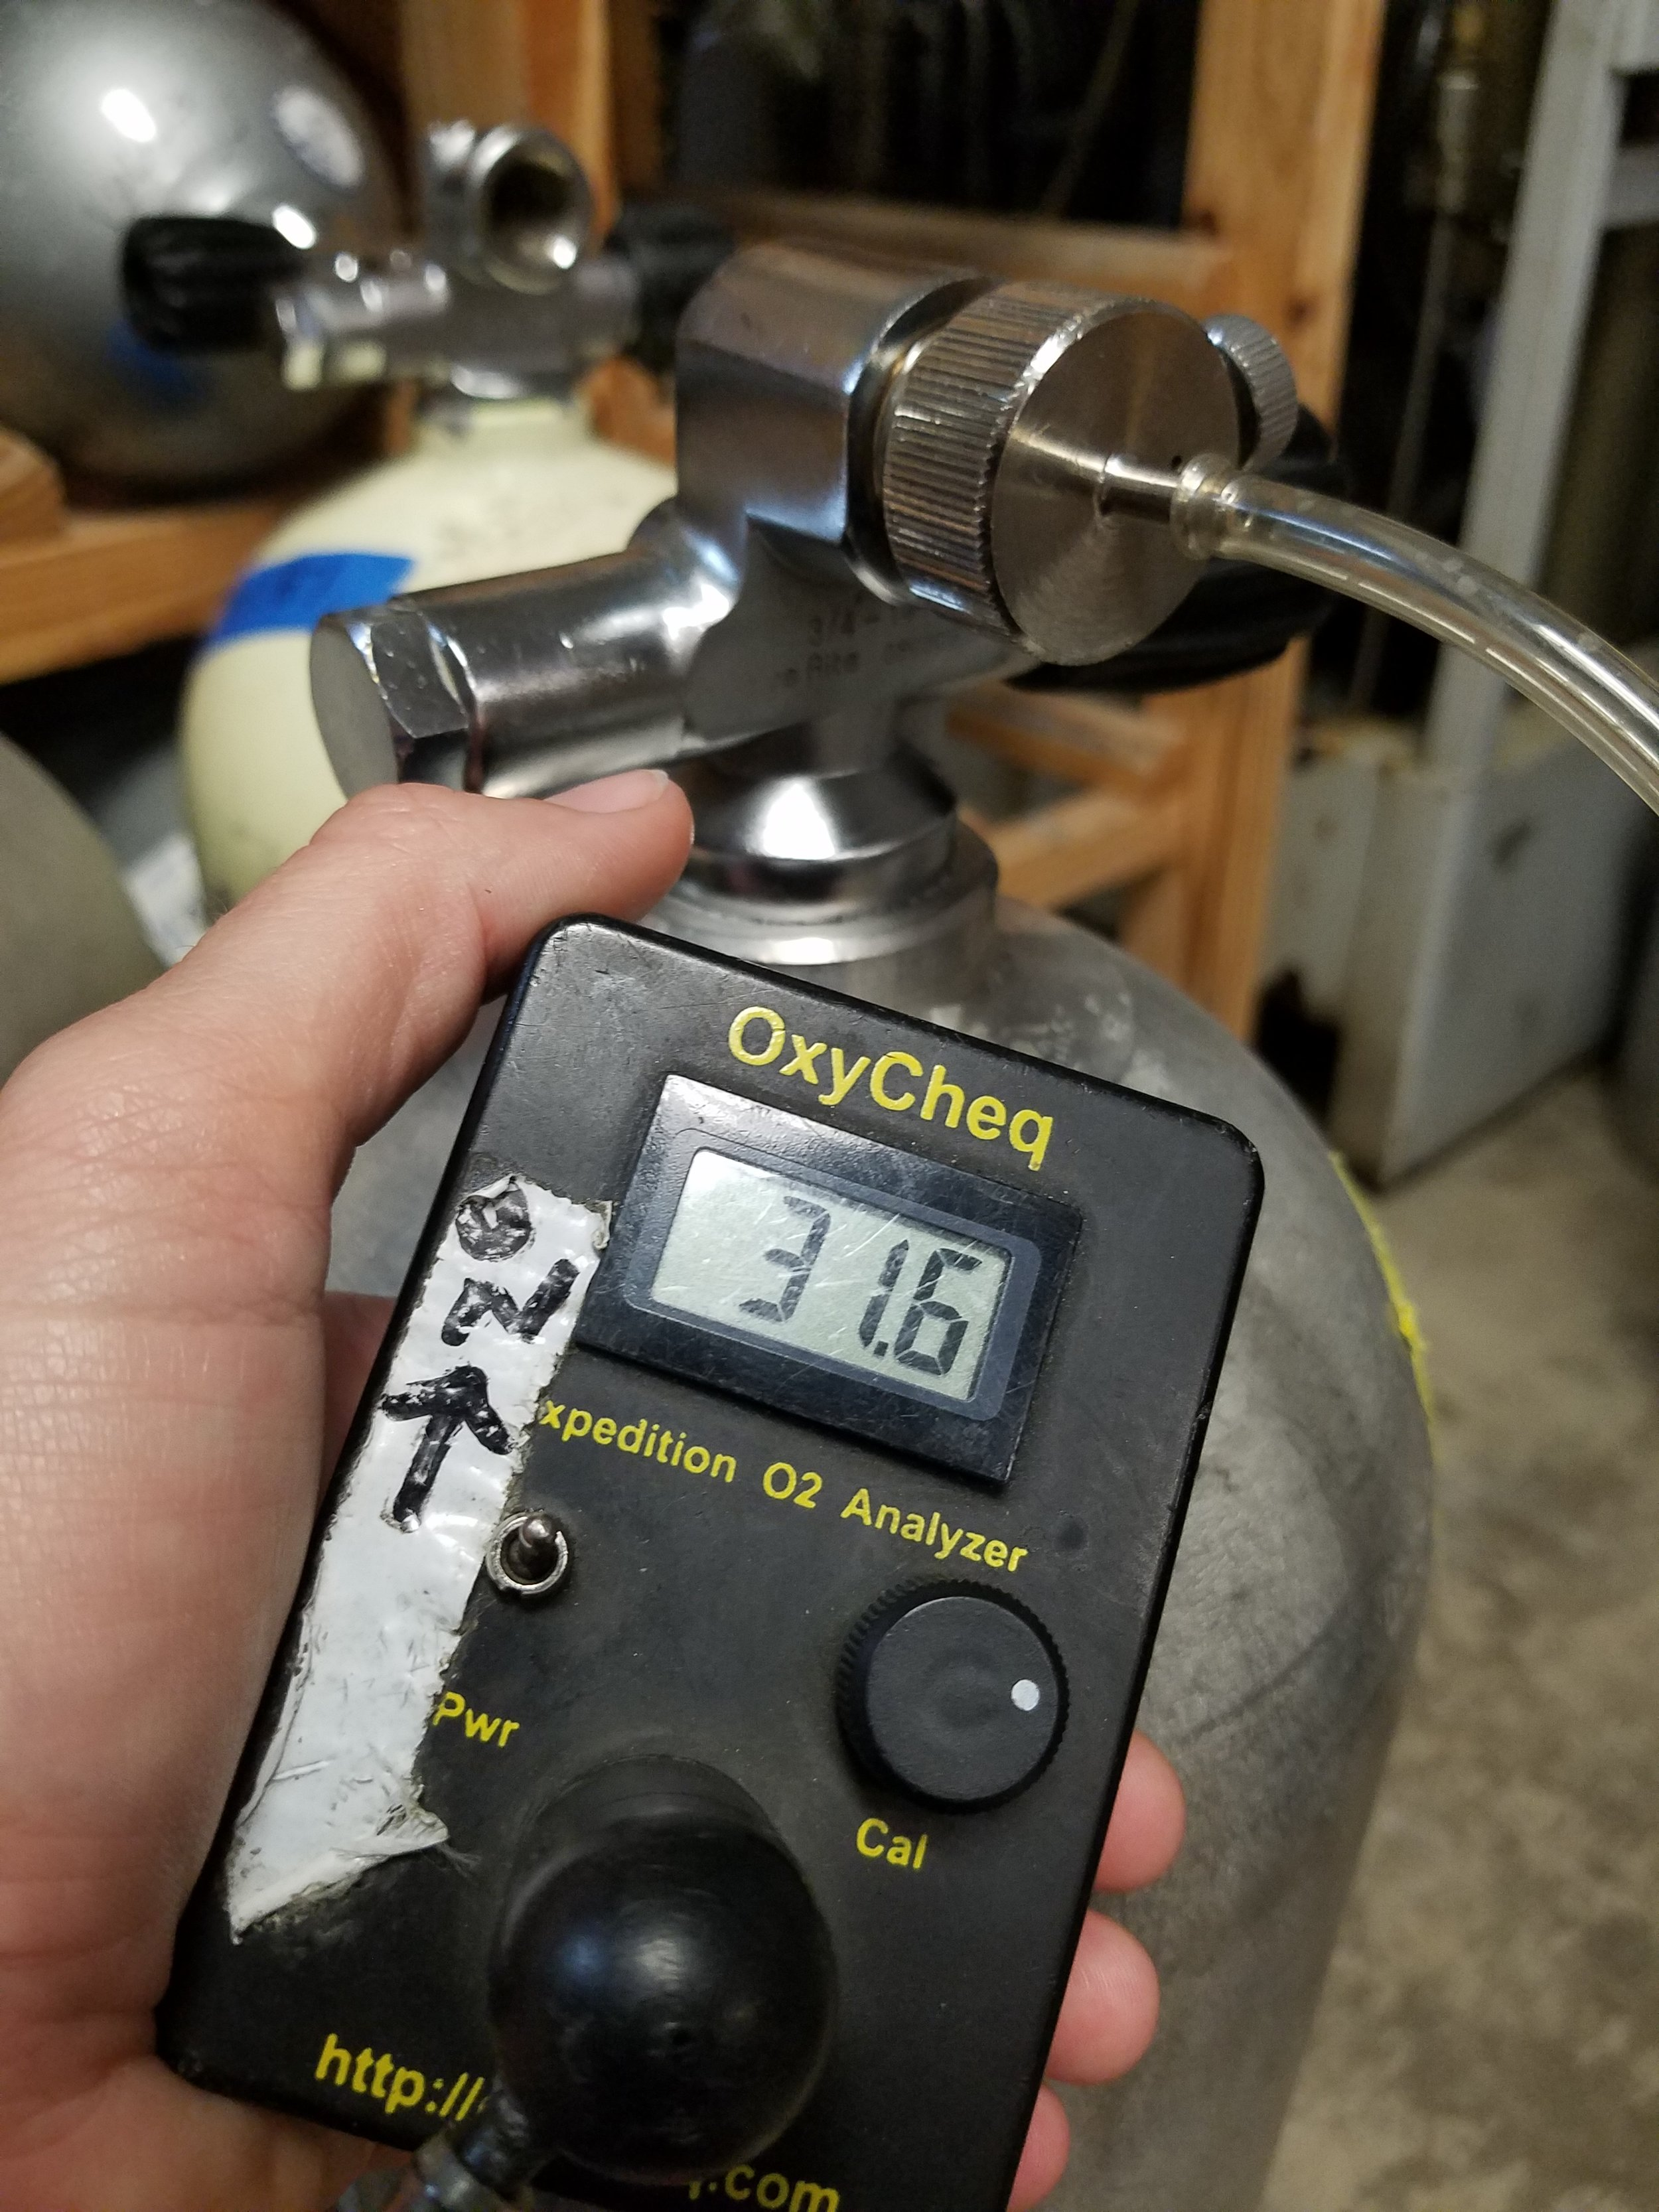 Every professional dive shop I've been to has a nitrox analyzer available for use and every professional shop I've been to has a helium analyzer as well if they are supplying trimix.